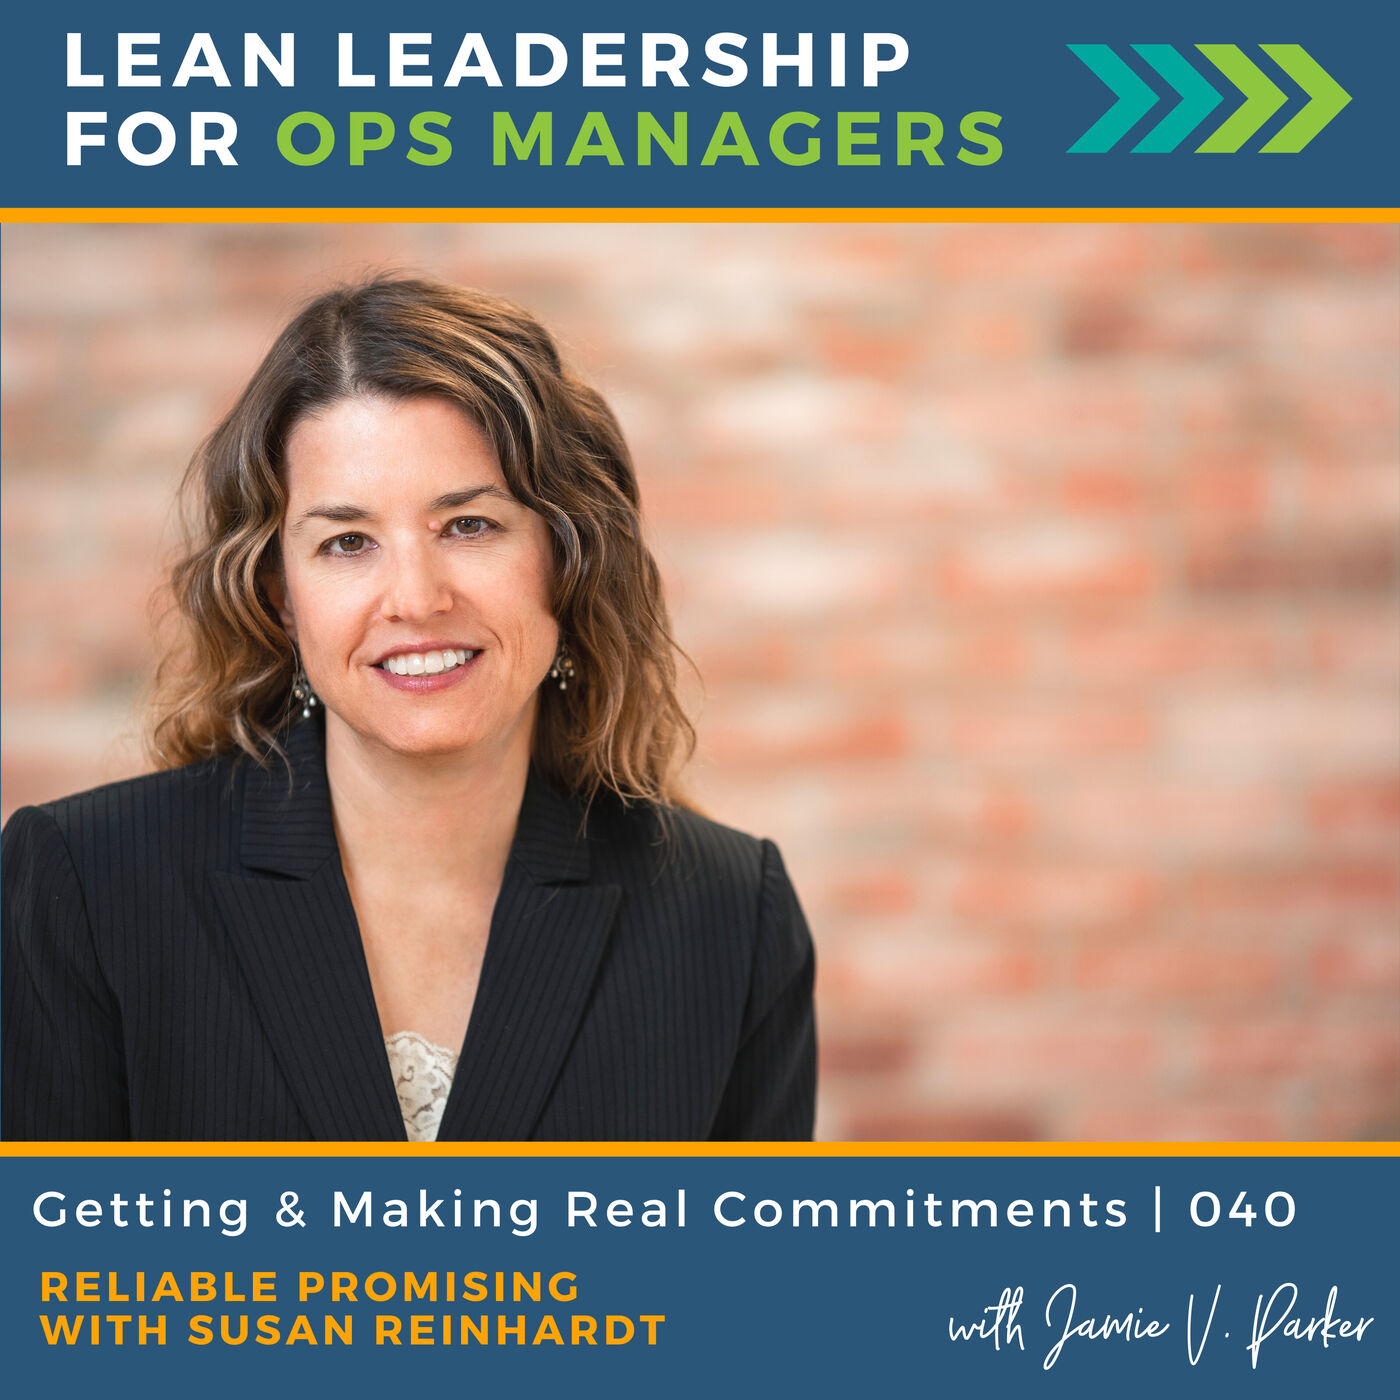 Getting and Making Real Commitments: Reliable Promising with Susan Reinhardt   040